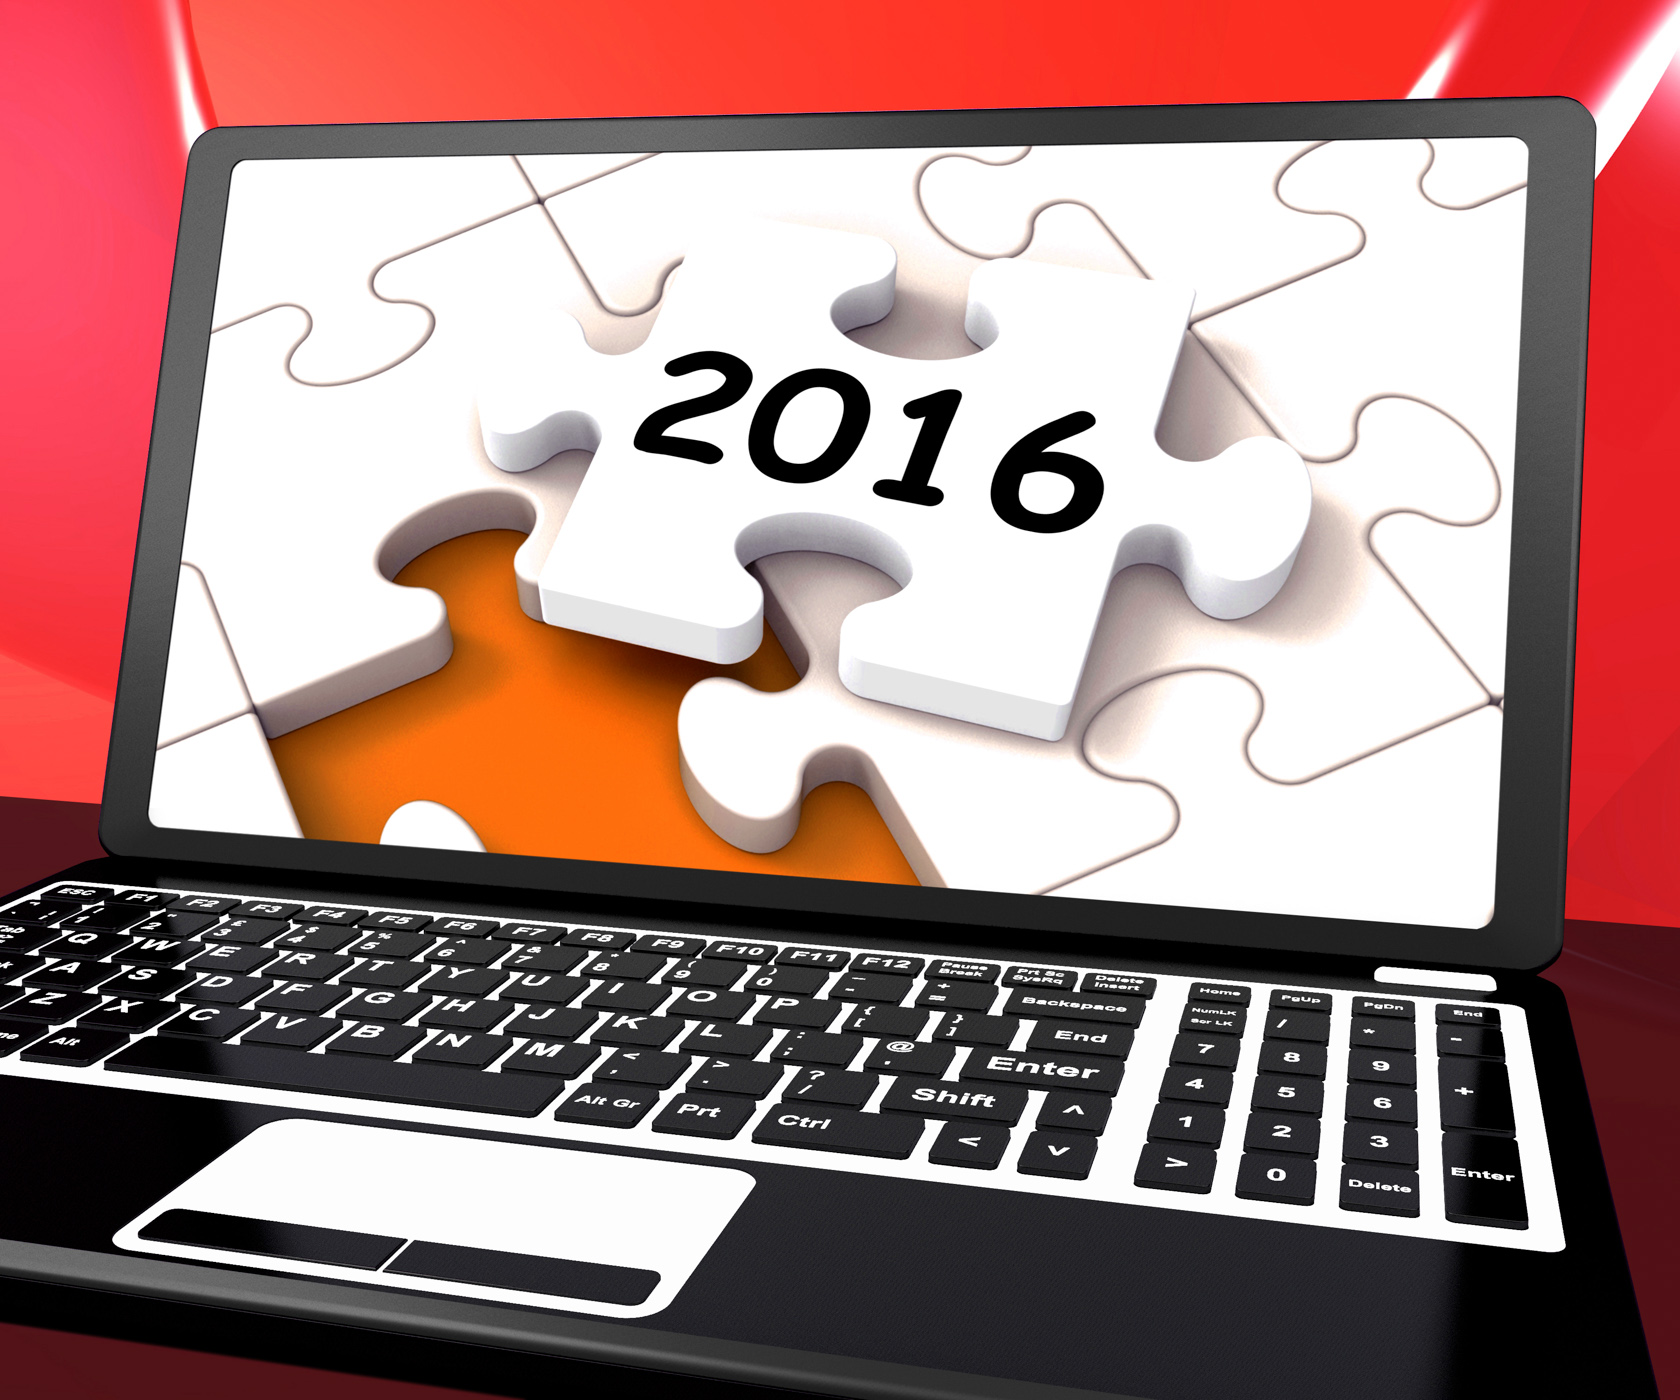 Two thousand and sixteen on laptop shows new years resolution 2016 photo